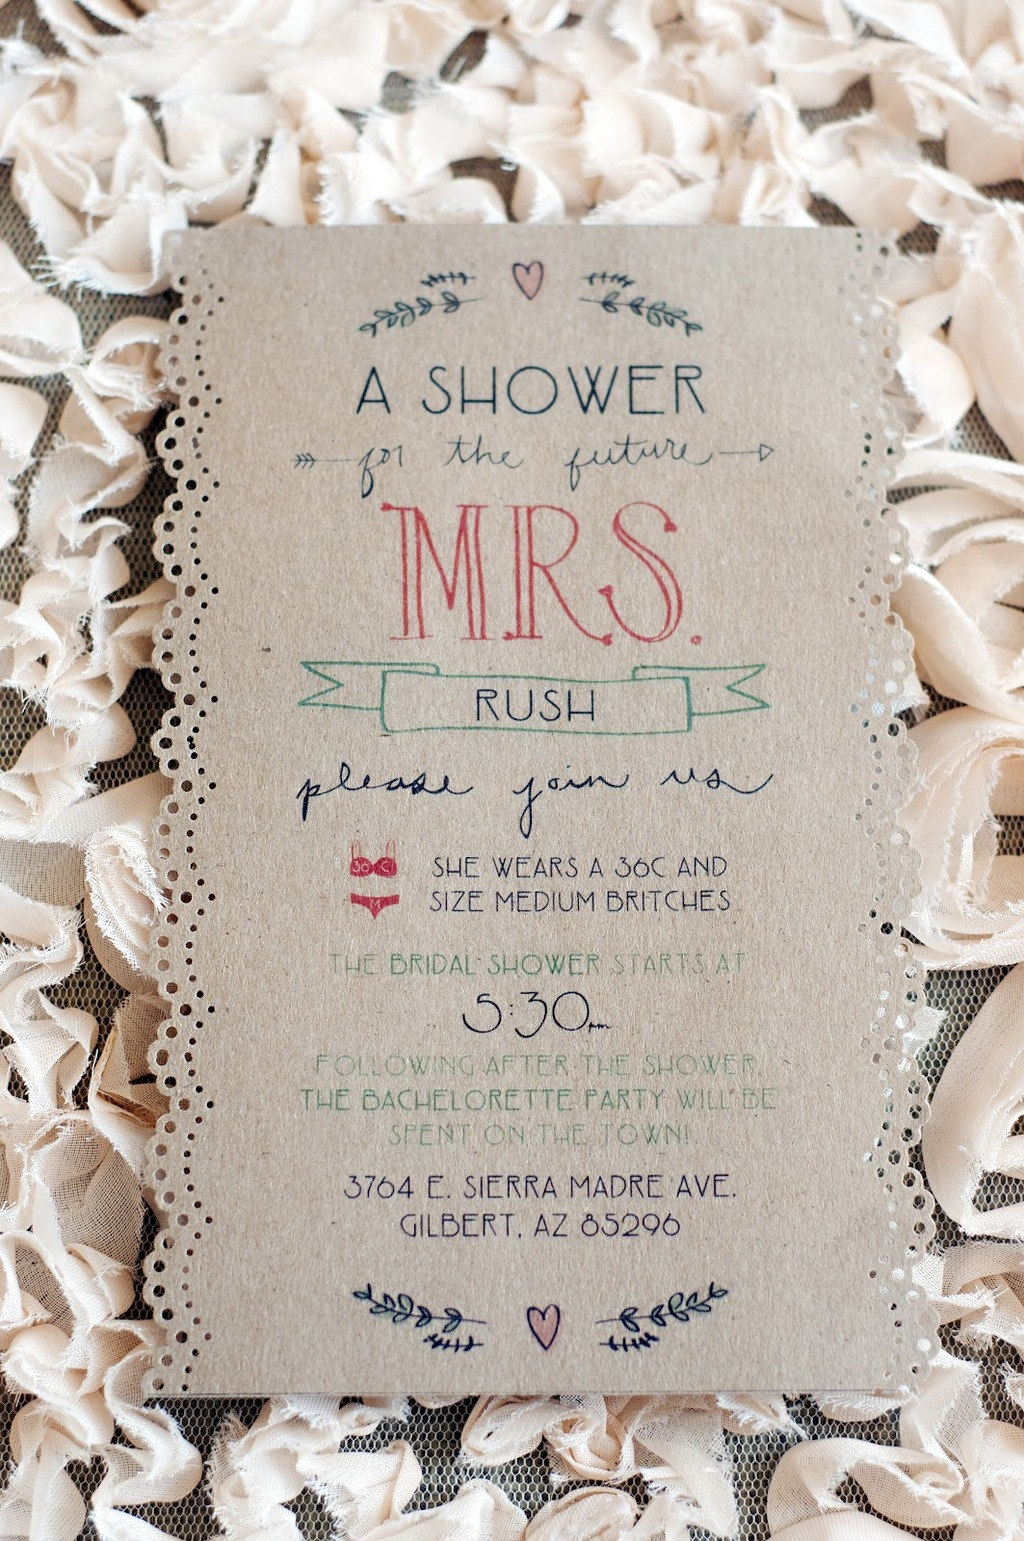 Handmade-wedding-ideas-bridal-shower-invite.full